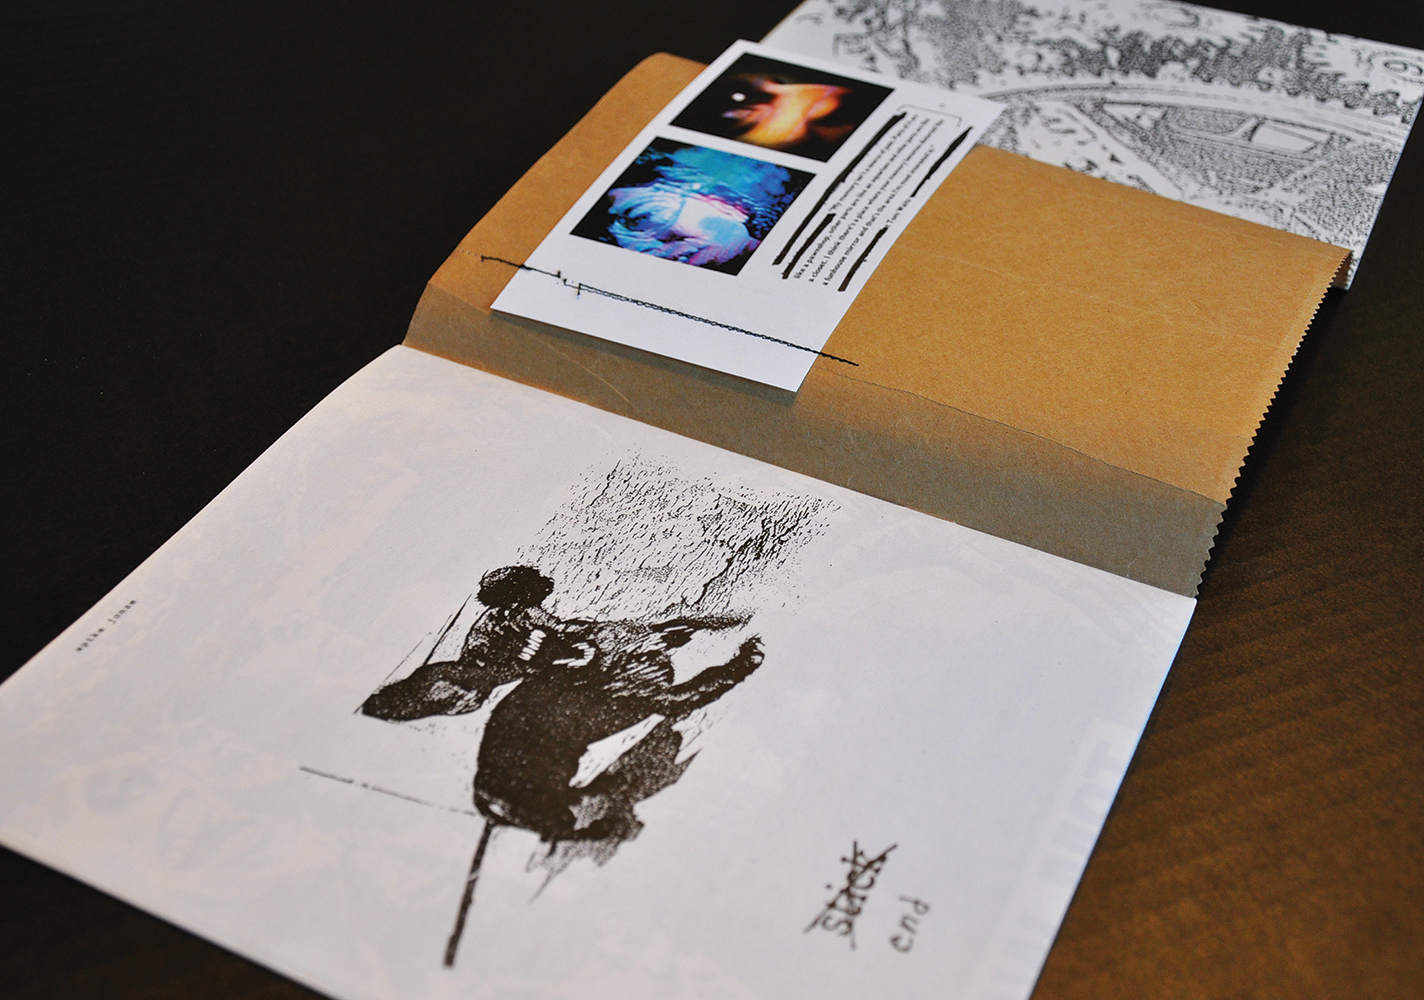 """Bend issue #11, """" Bend House """" featured a fold-out cover attaching two different publications; one by Andy himself, and the other by artist,  Rodger Bridges . Artist's bios were sewn onto the back cover."""